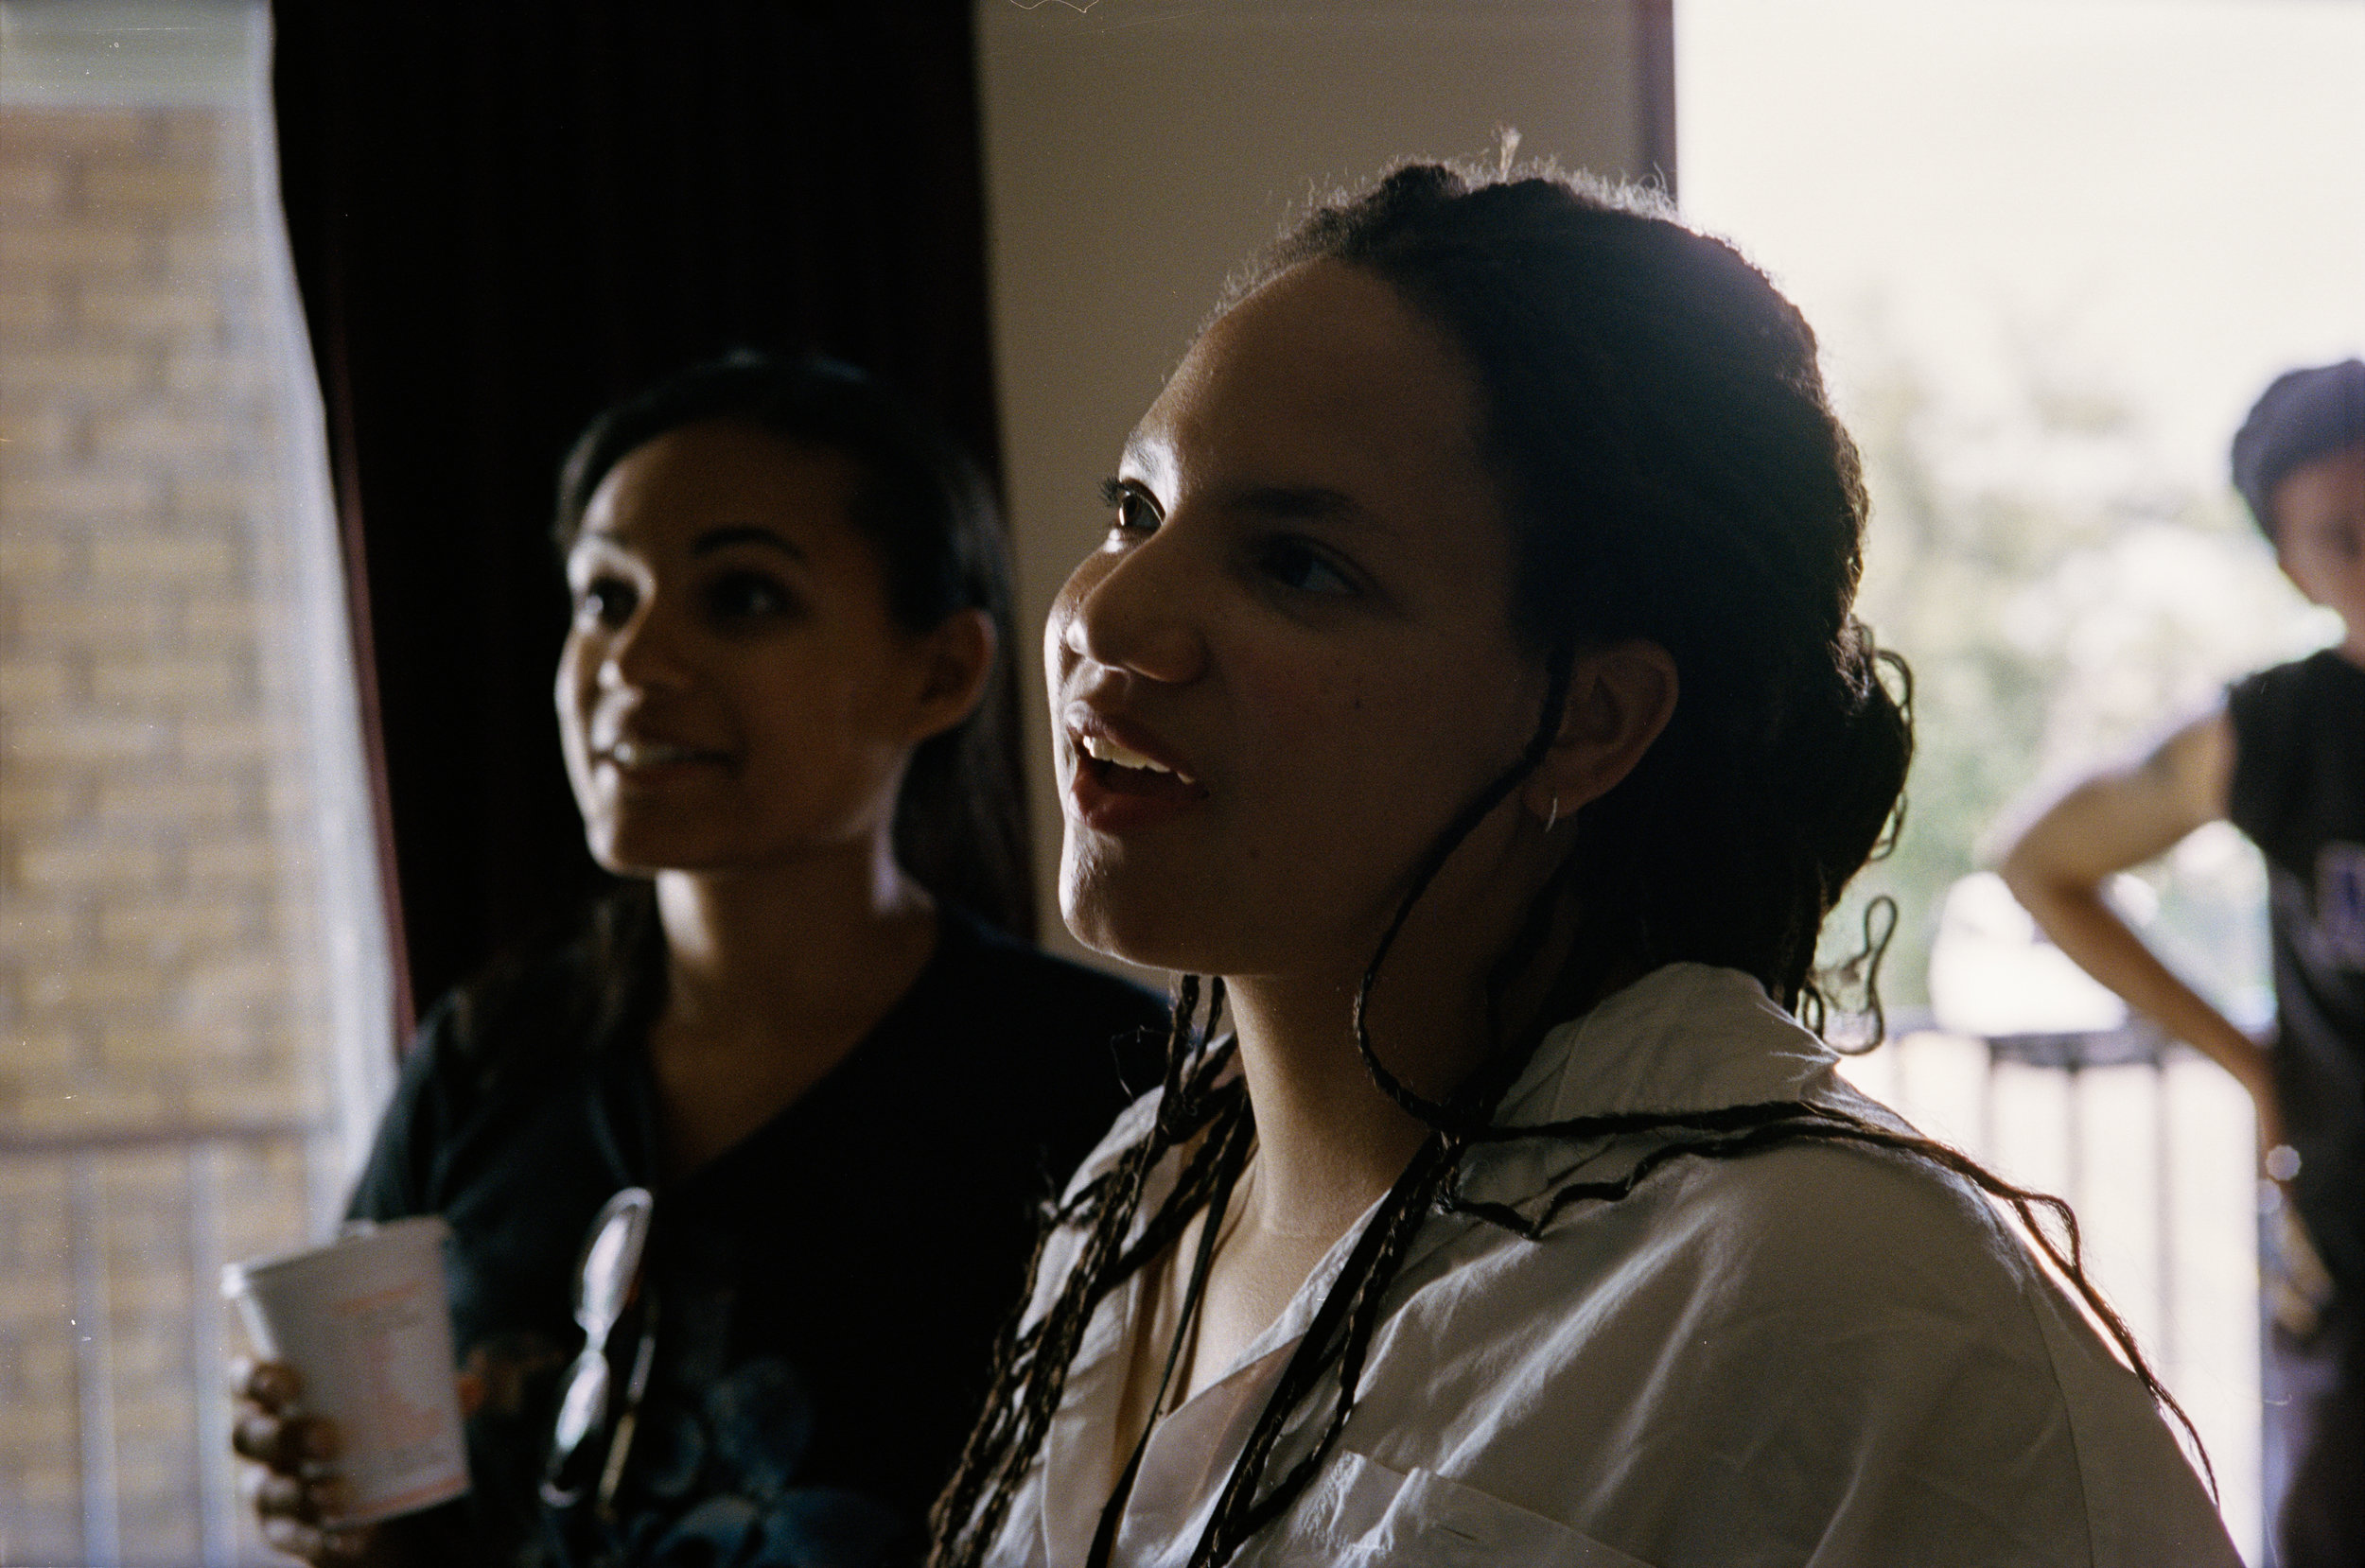 """producer Lauren and director Haley Anderson watch the take on the set of """"Summer Animals""""  Kodak Portra (35mm)"""